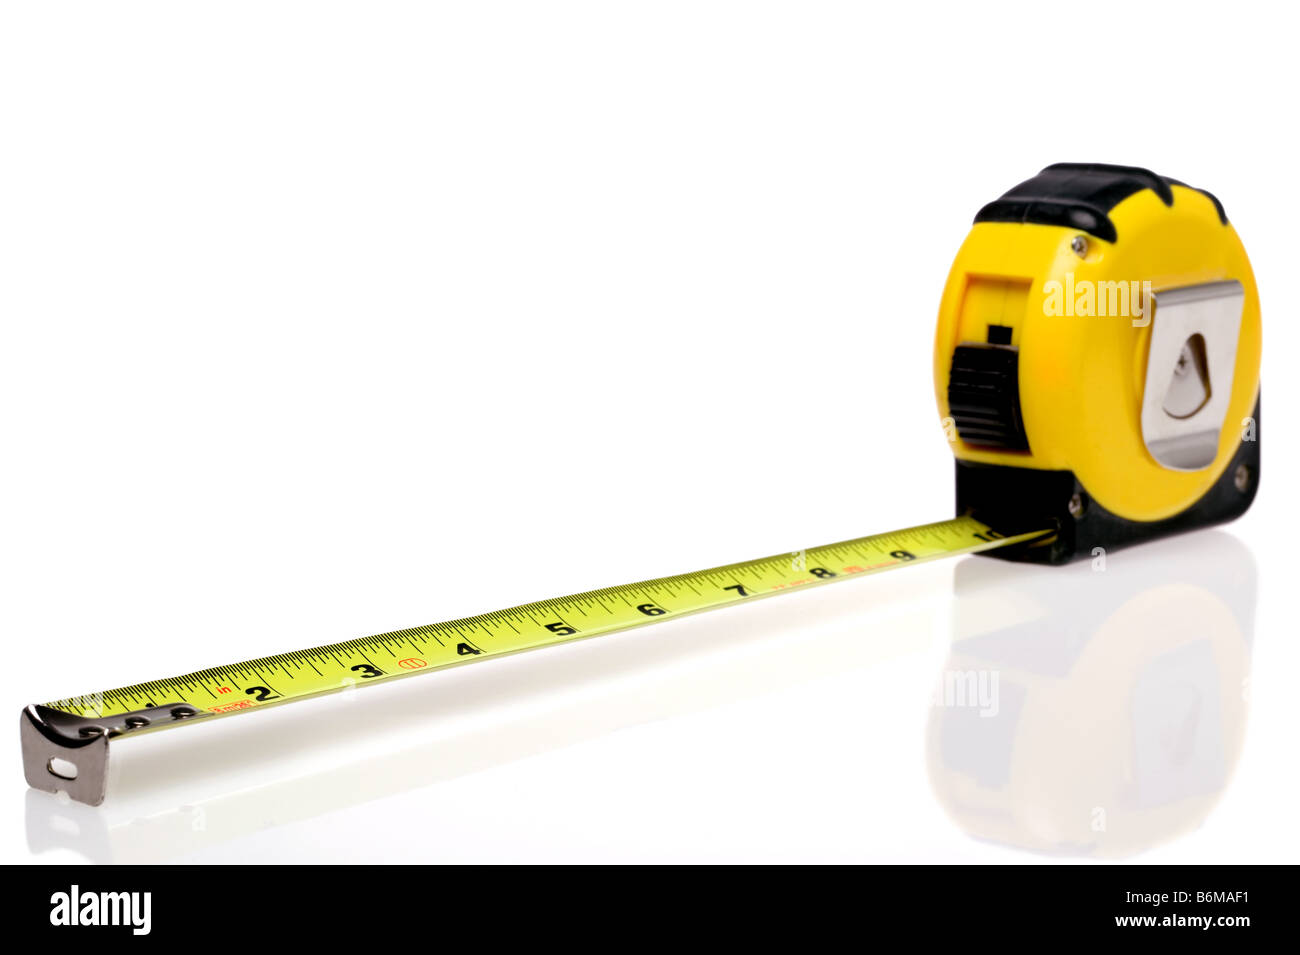 A yellow retractable steel tape measure isolated on a white background with slight reflection - Stock Image